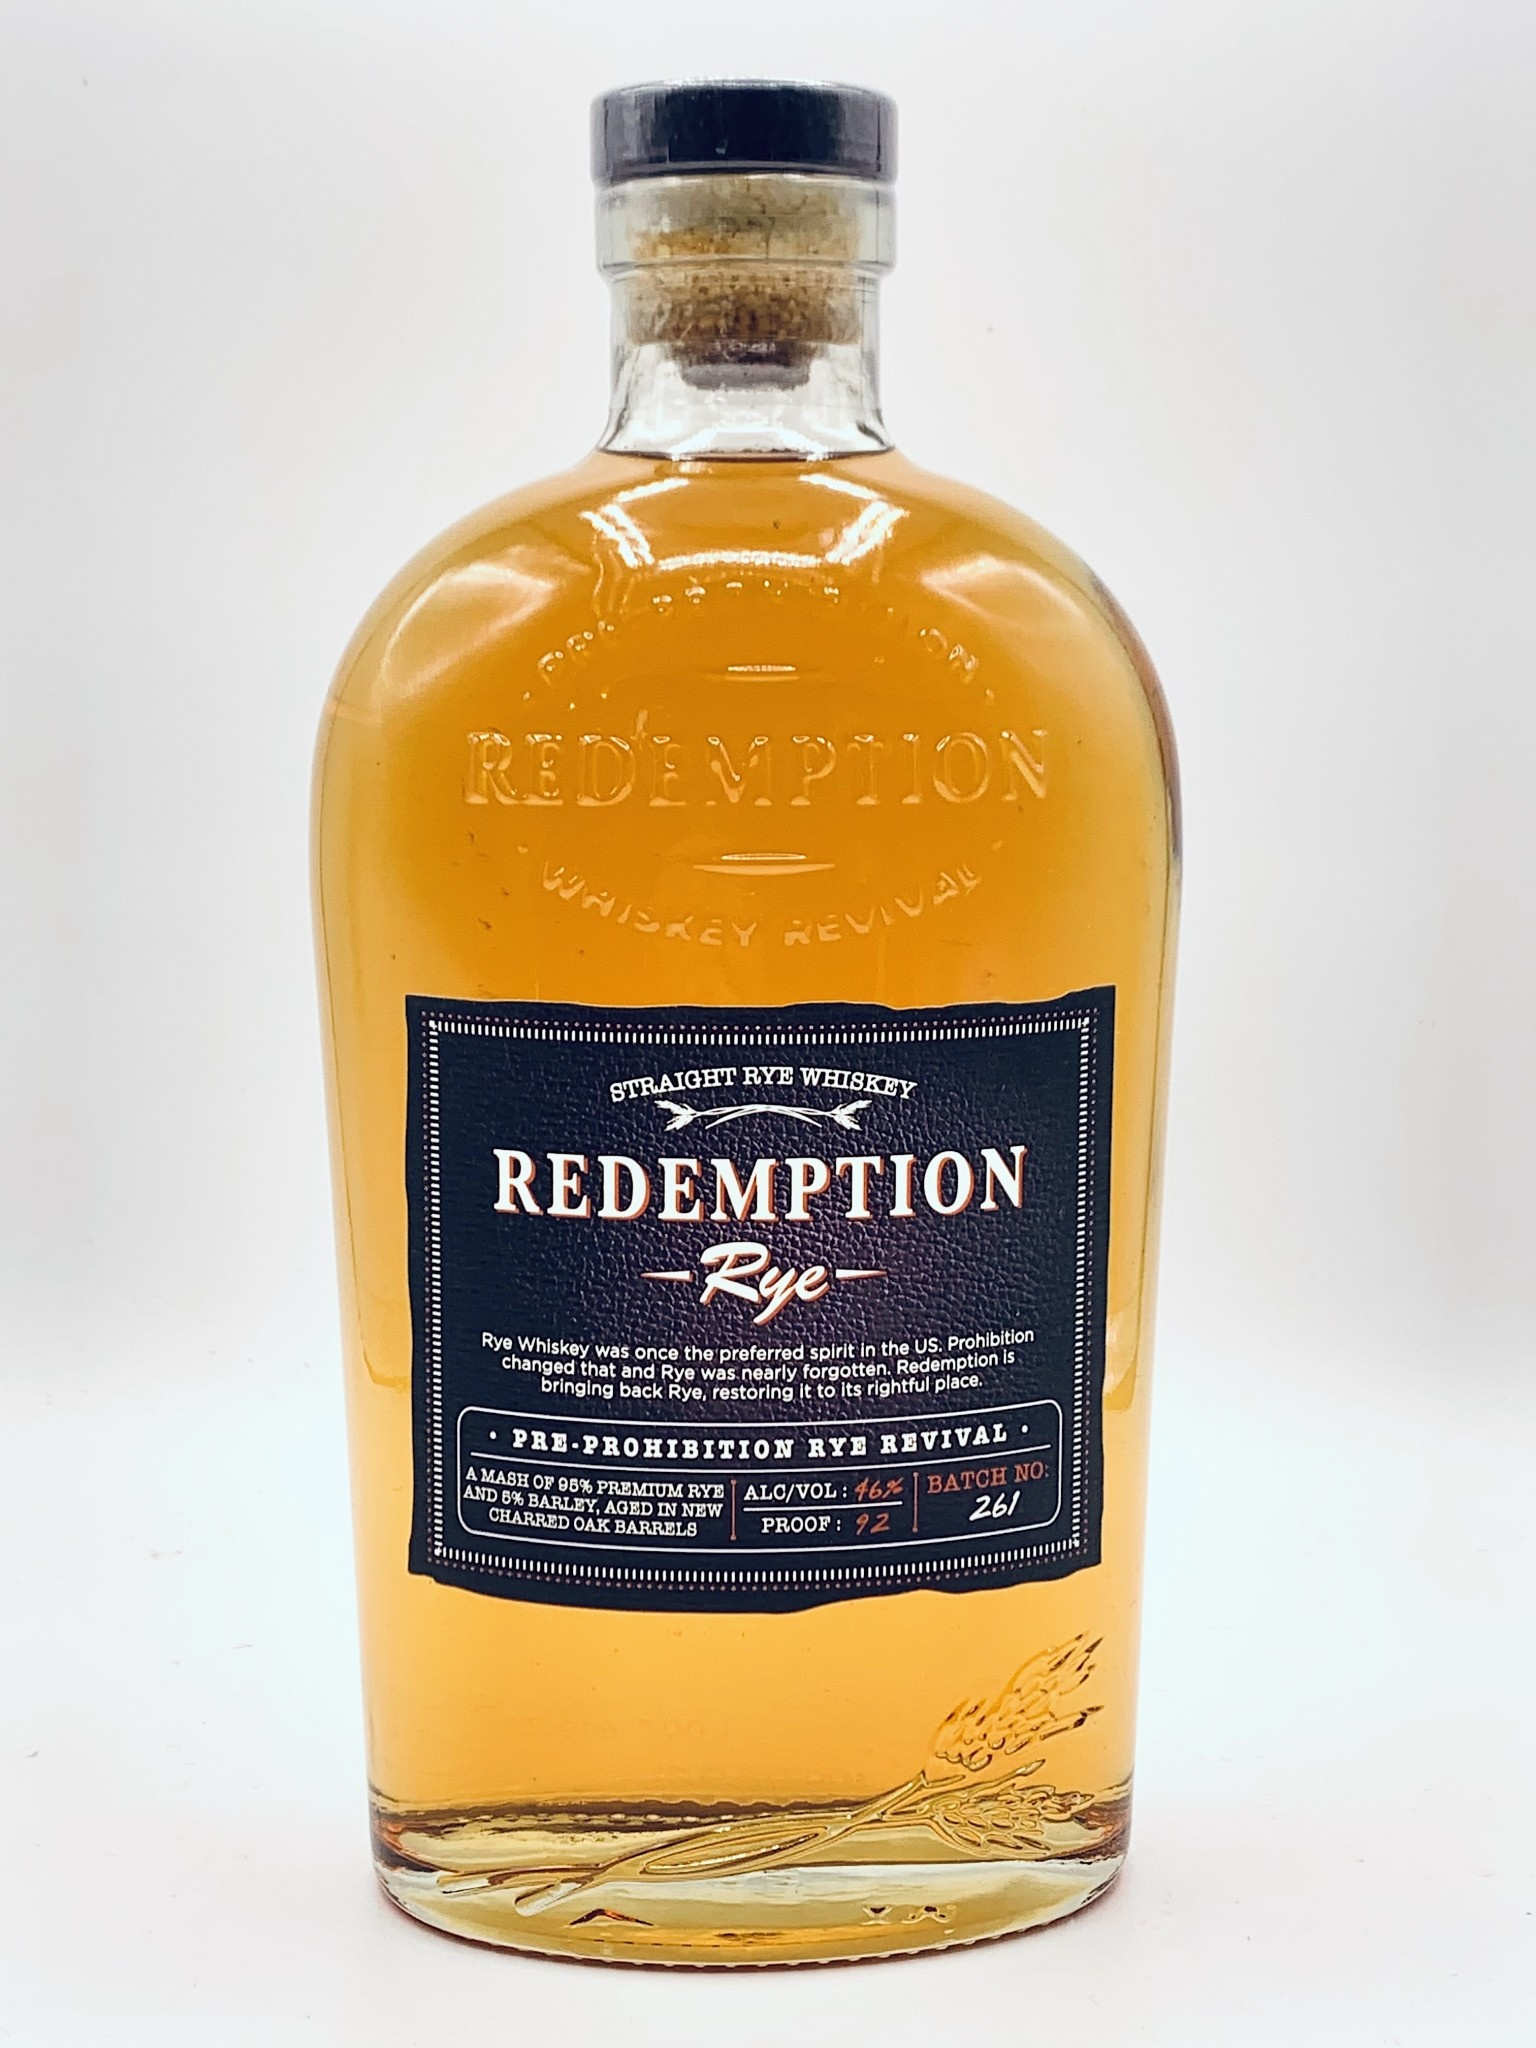 Bardstown Redemption Rye Whiskey 750ml (92proof)